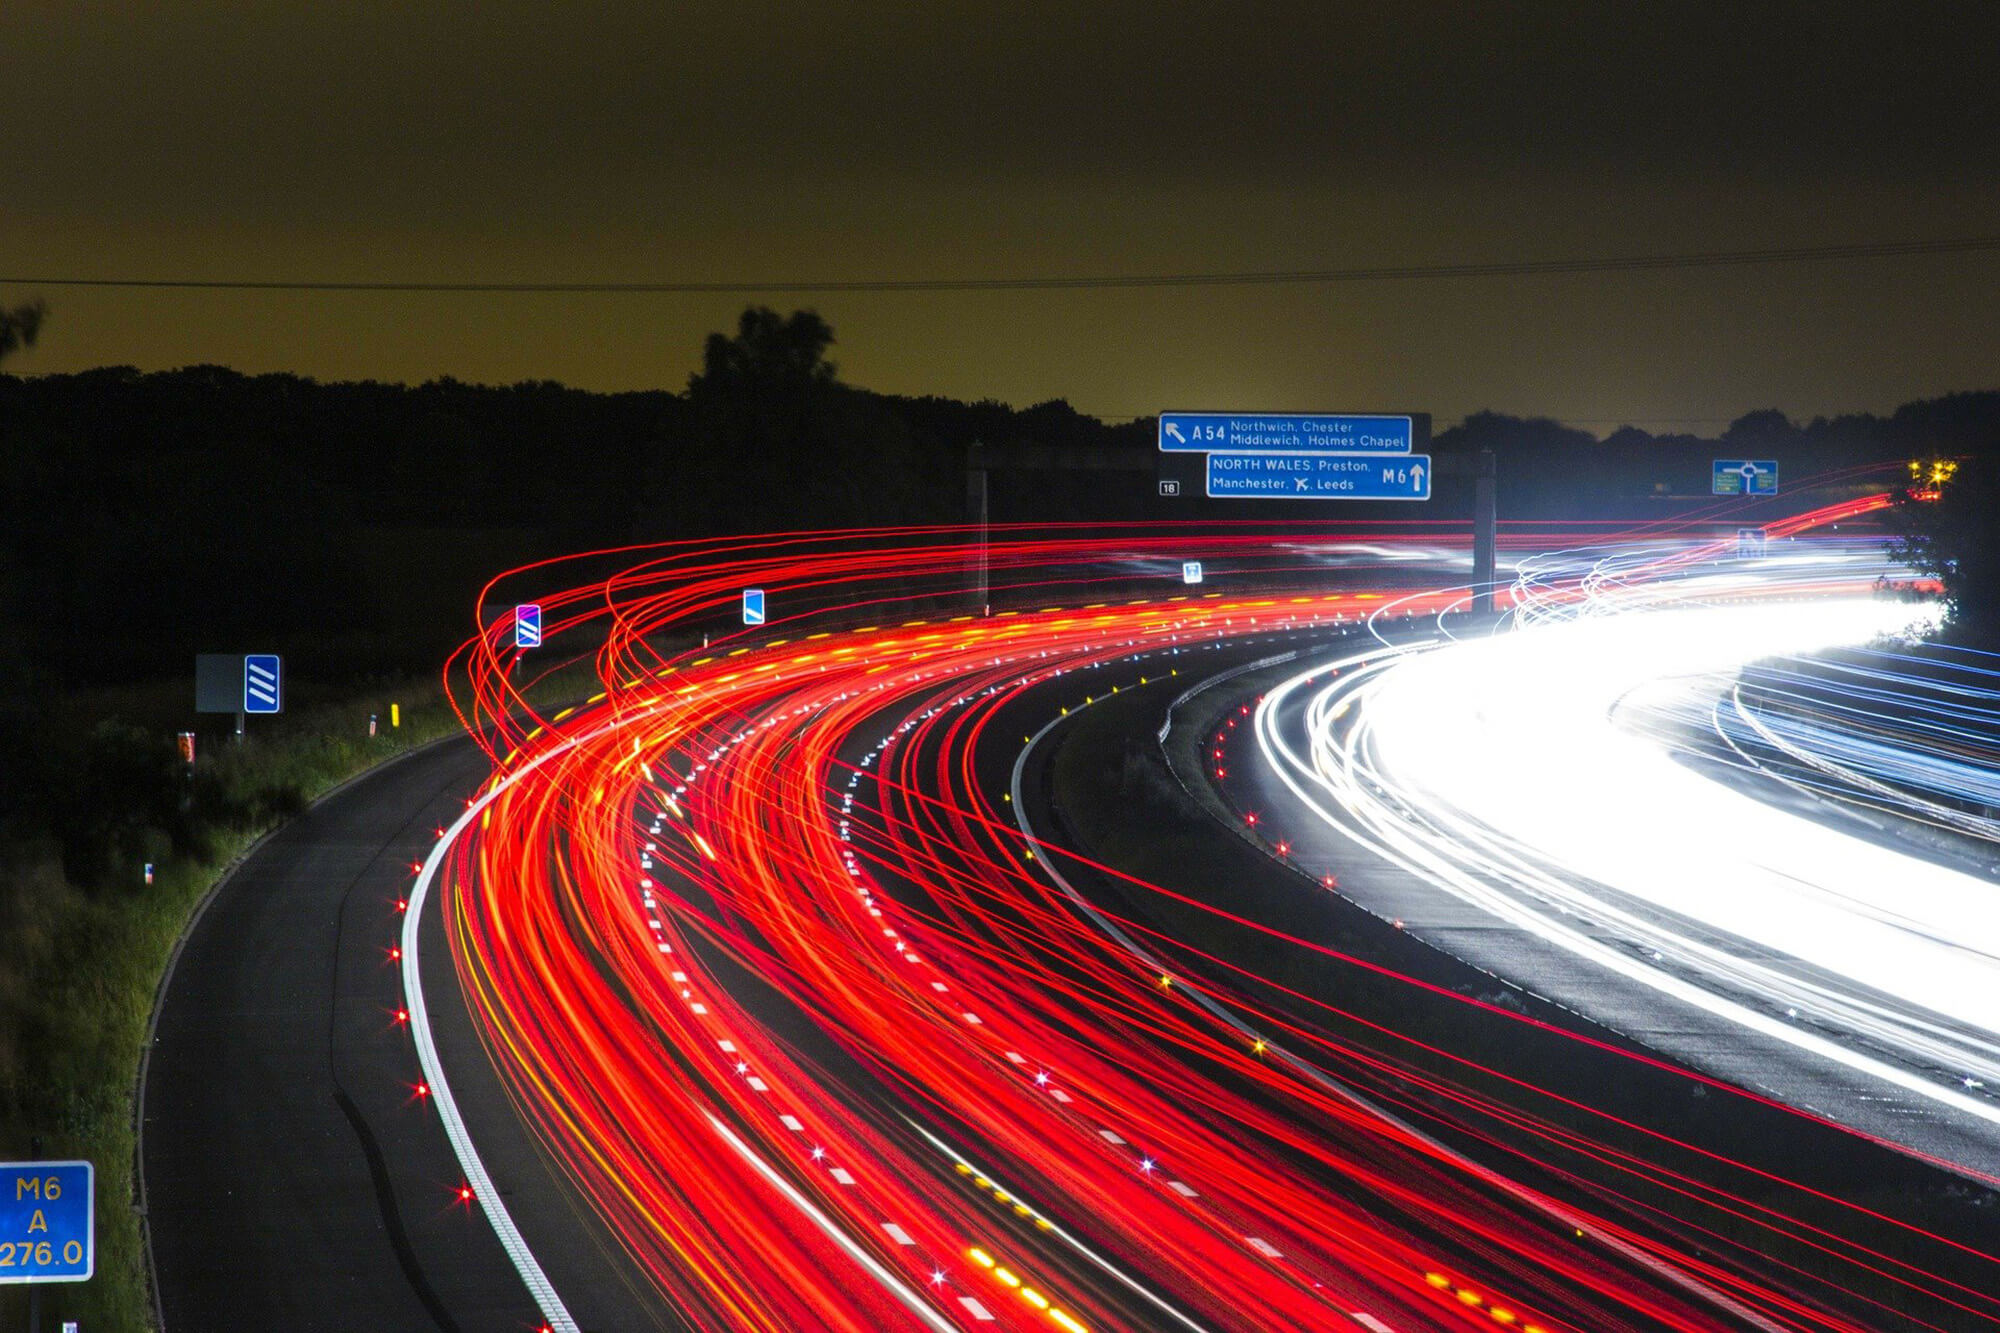 swooshes of lights from cars on the motorway